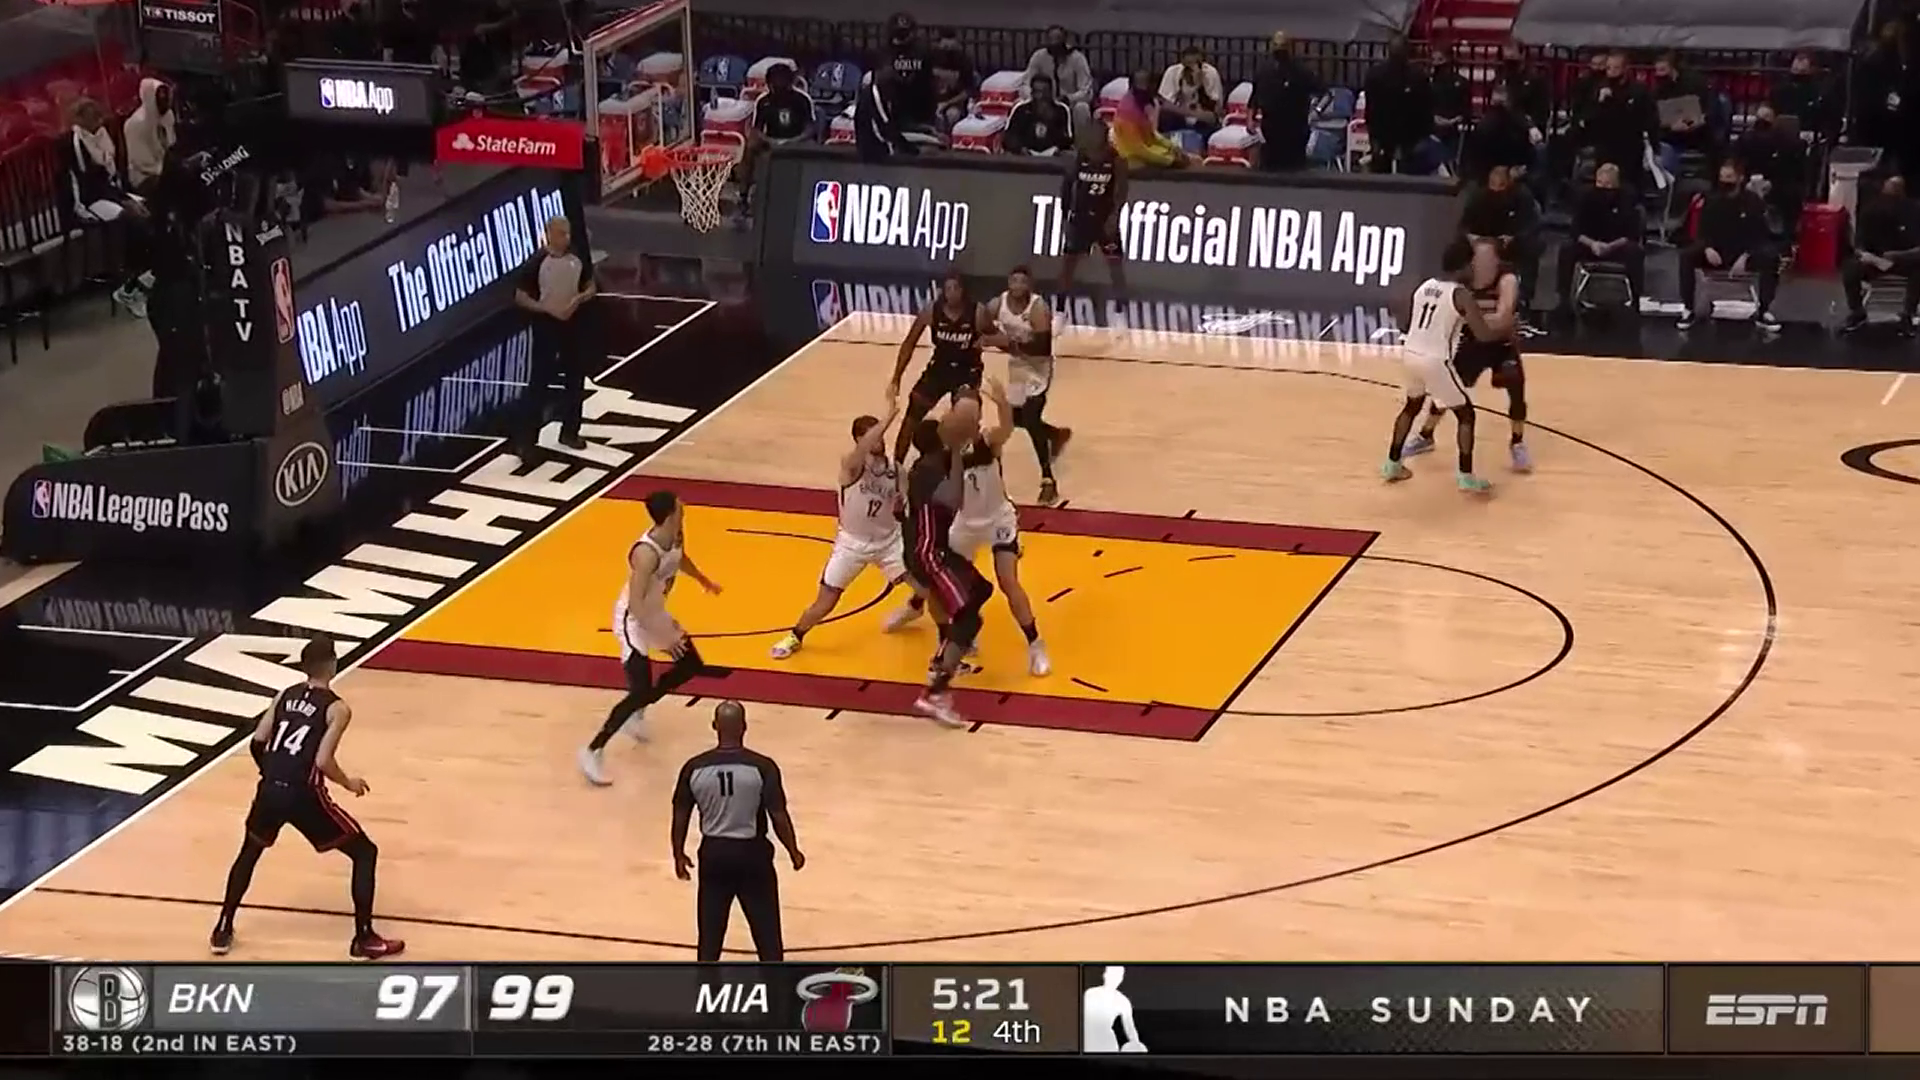 Bam's Nets Turnovers